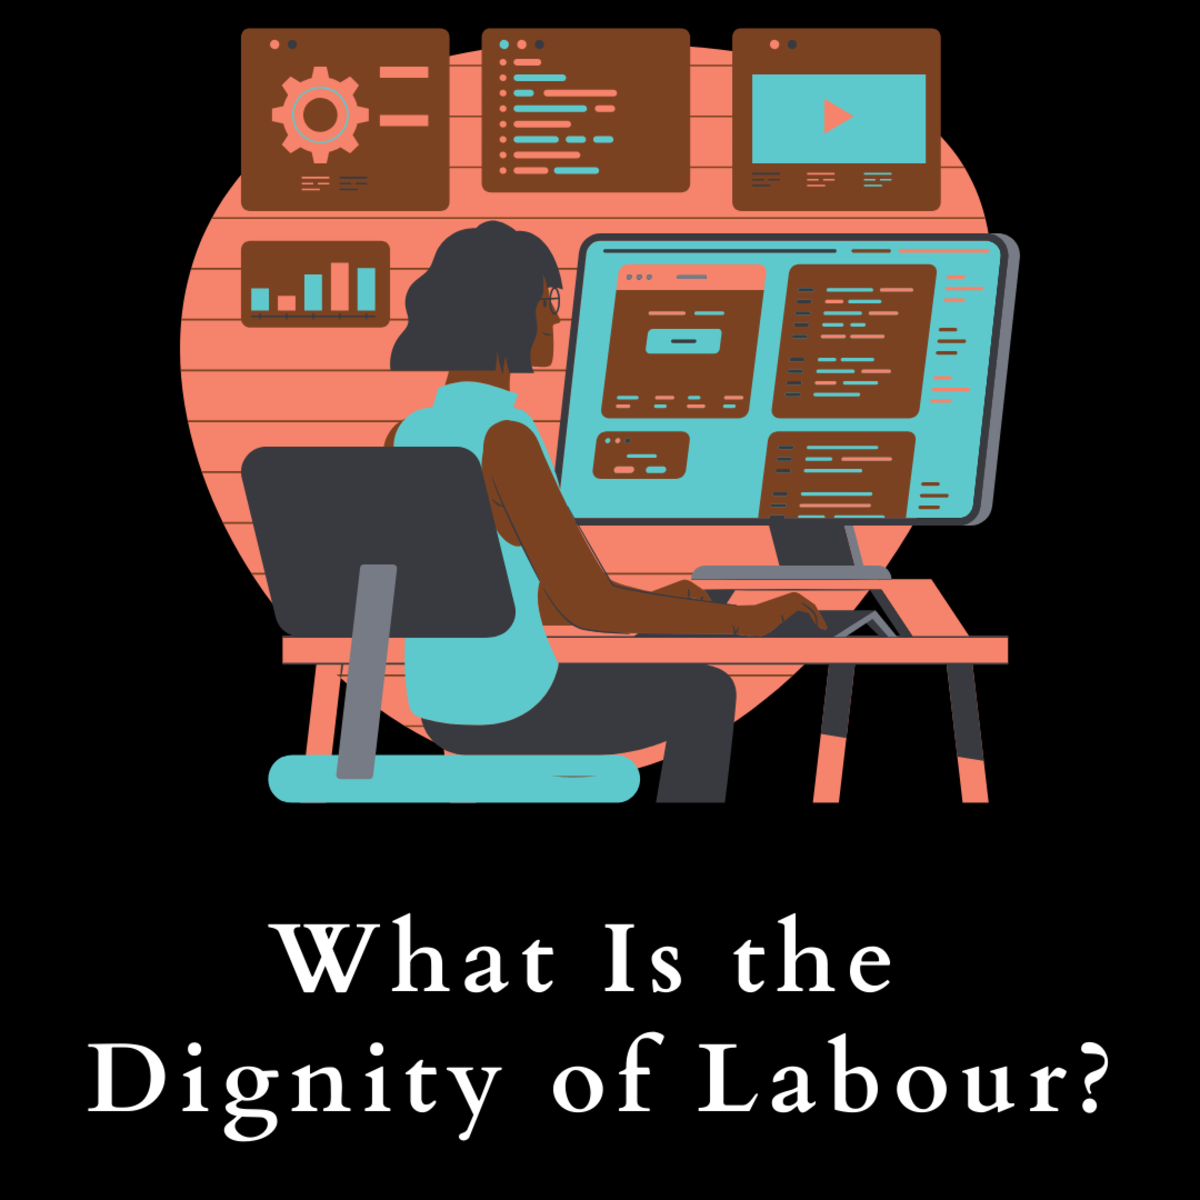 What is the dignity of work? Is it real? Read on to find out.